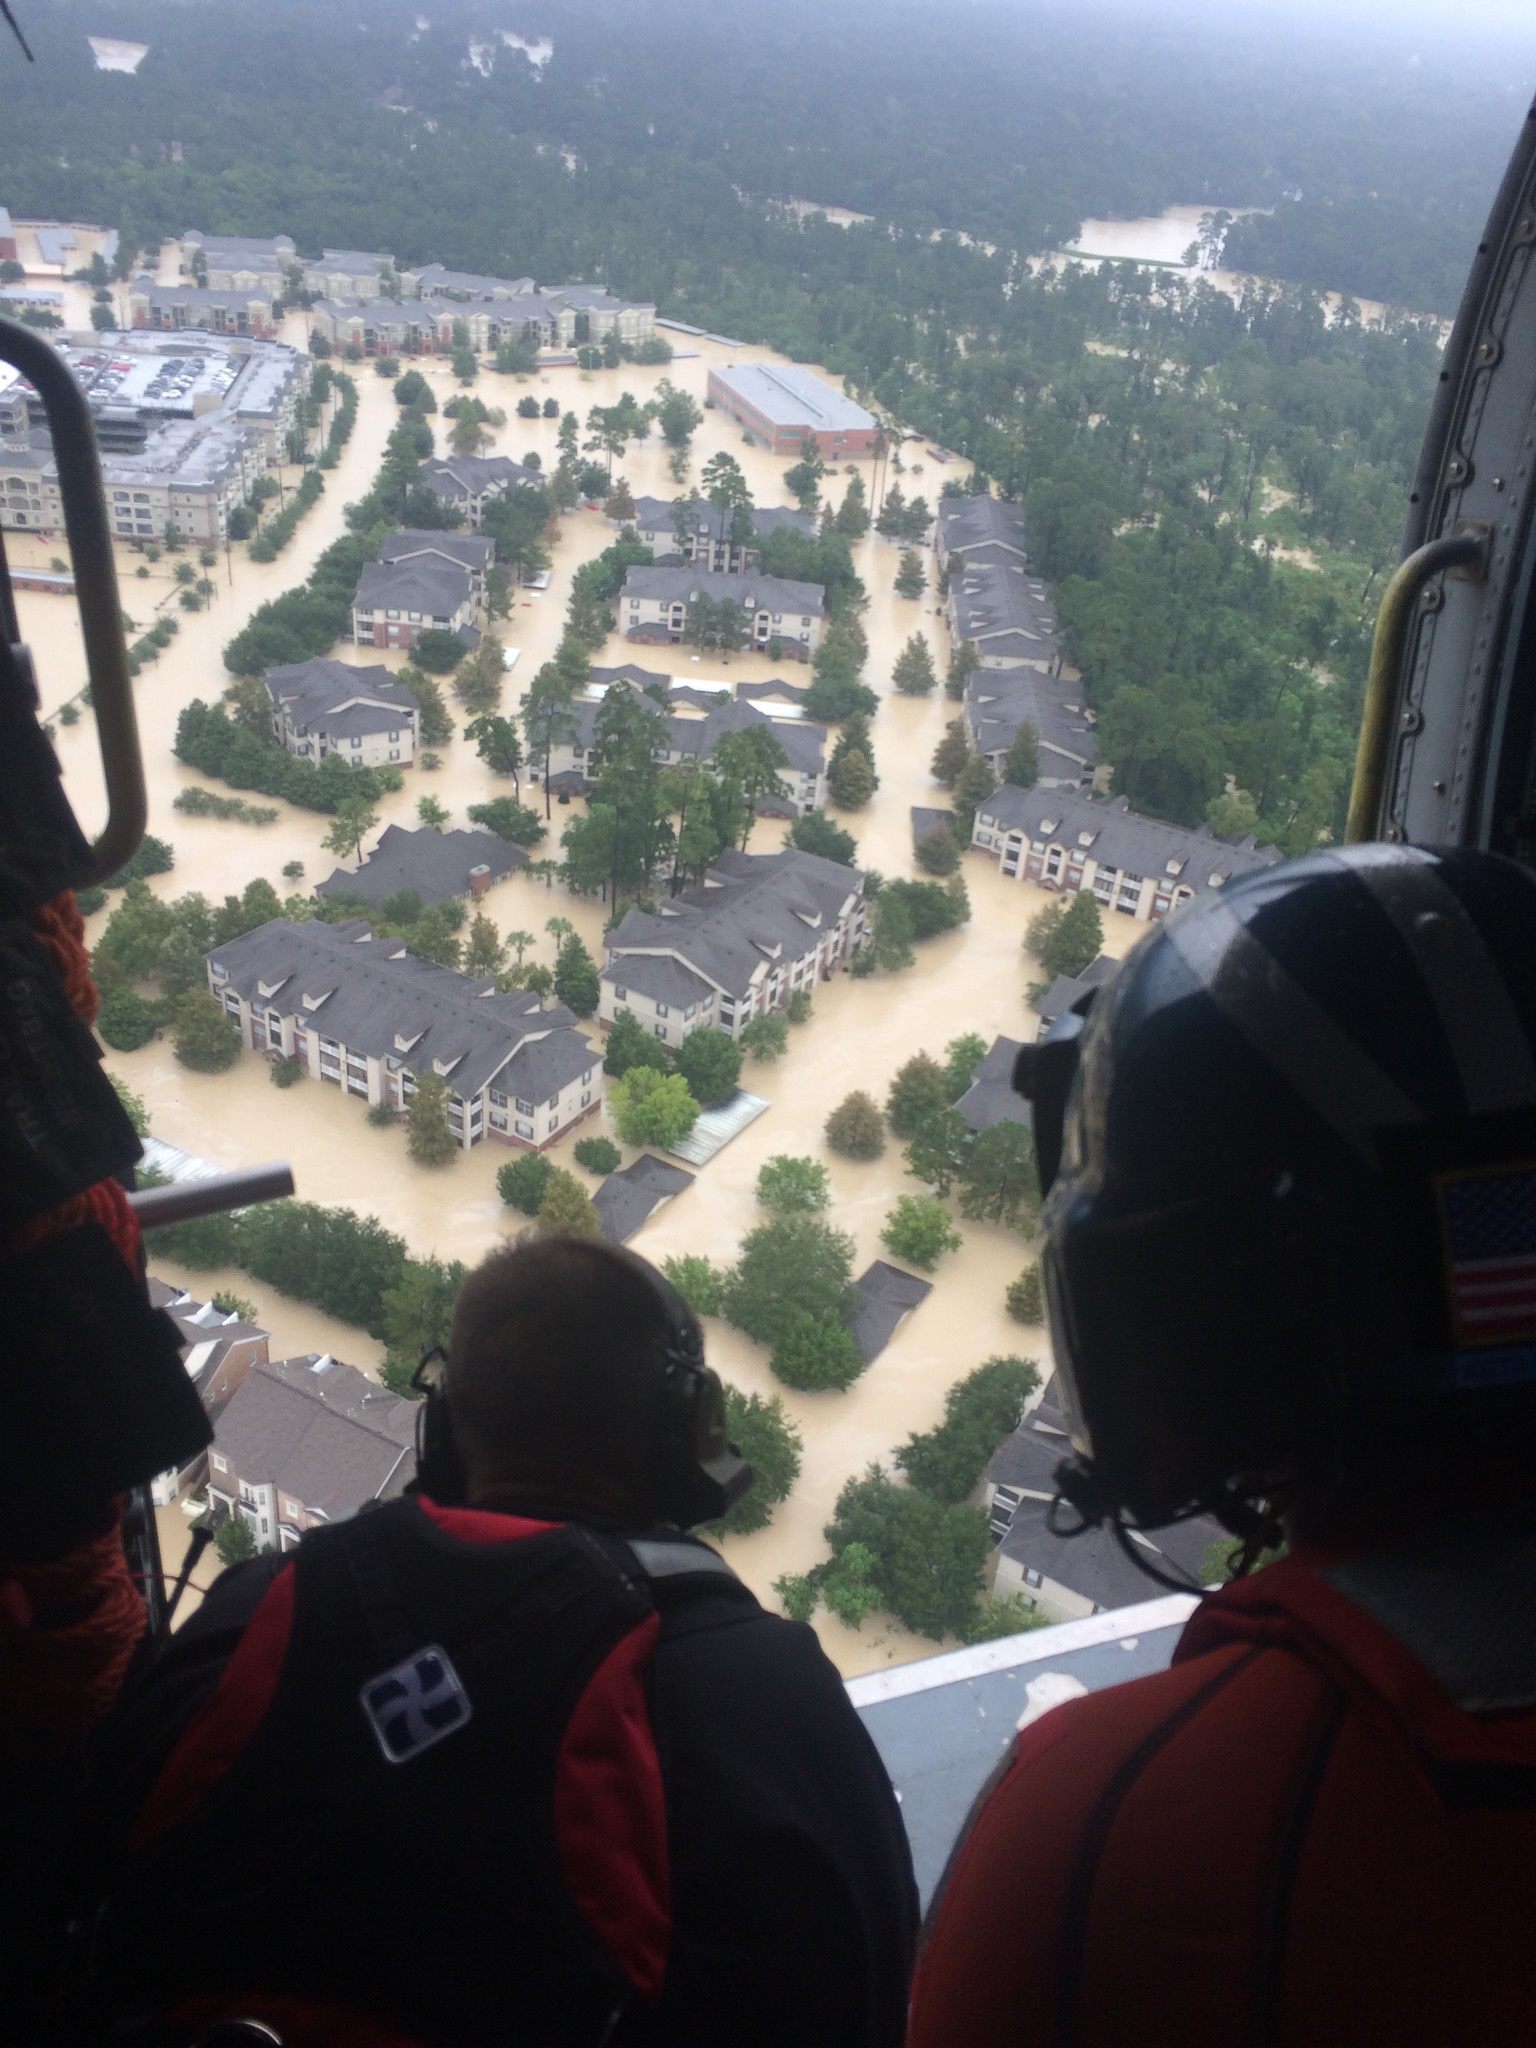 Members of the Kentucky Air National Guard's 123rd Special Tactics Squadron fly on board a U.S. Coast Guard helicopter near Houston, Texas, Aug. 29, 2017. The airmen are patrolling the area looking for people who are trapped in their homes or on rooftops. (Air National Guard photo)